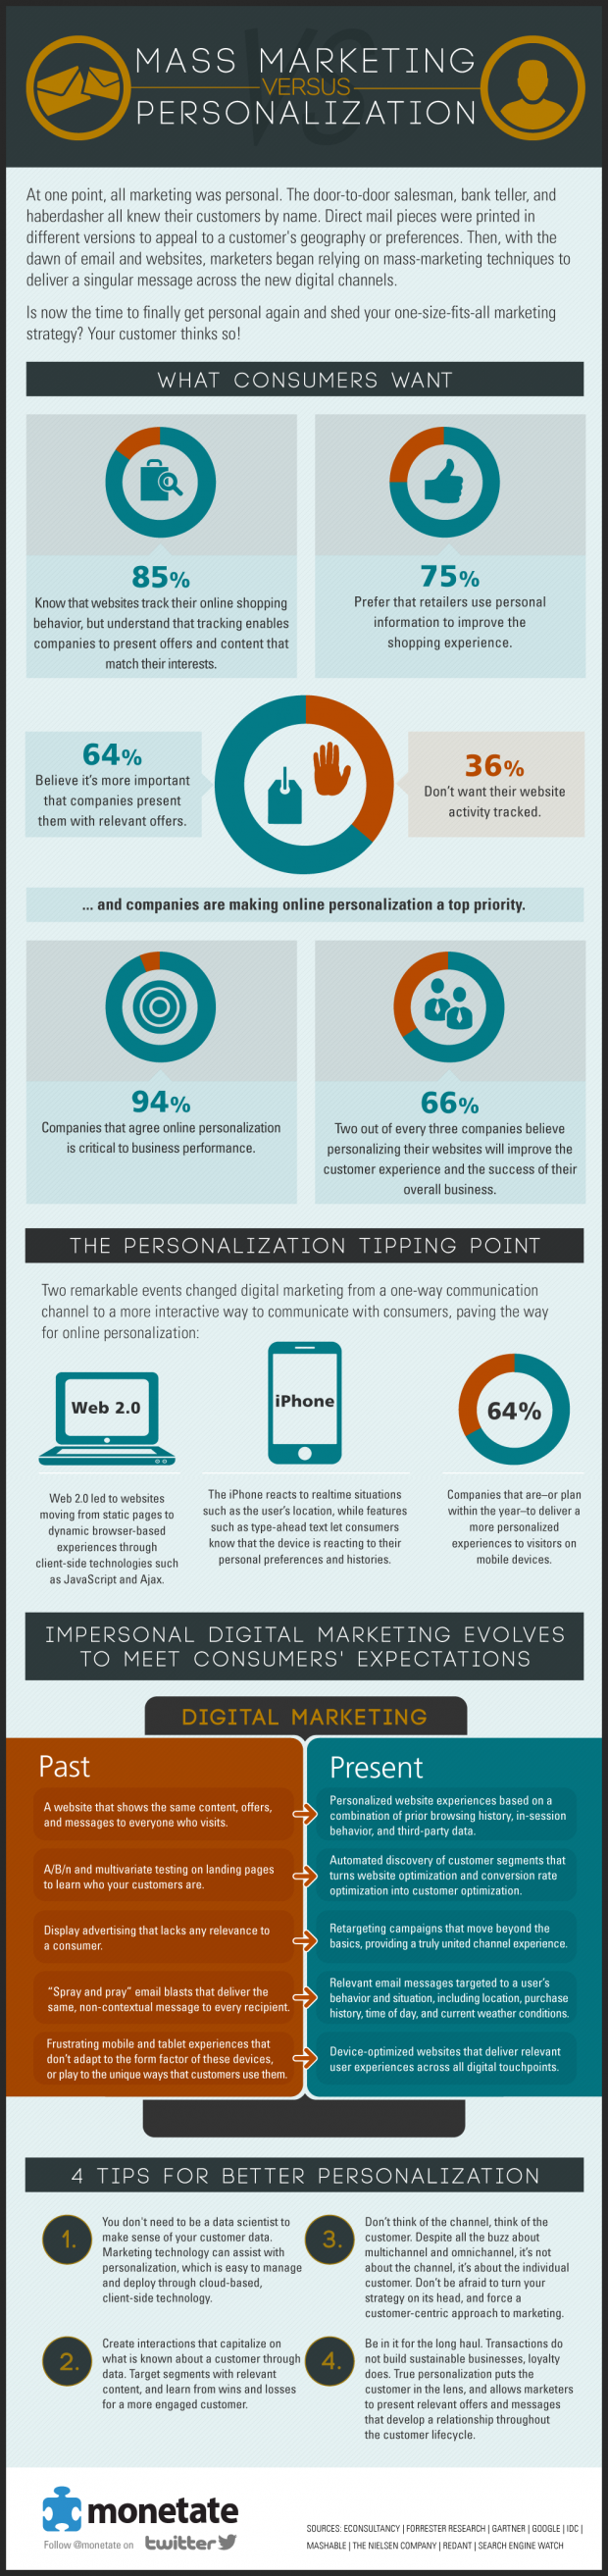 Mass Marketing vs One-to-One Personalization [INFOGRAPHIC]